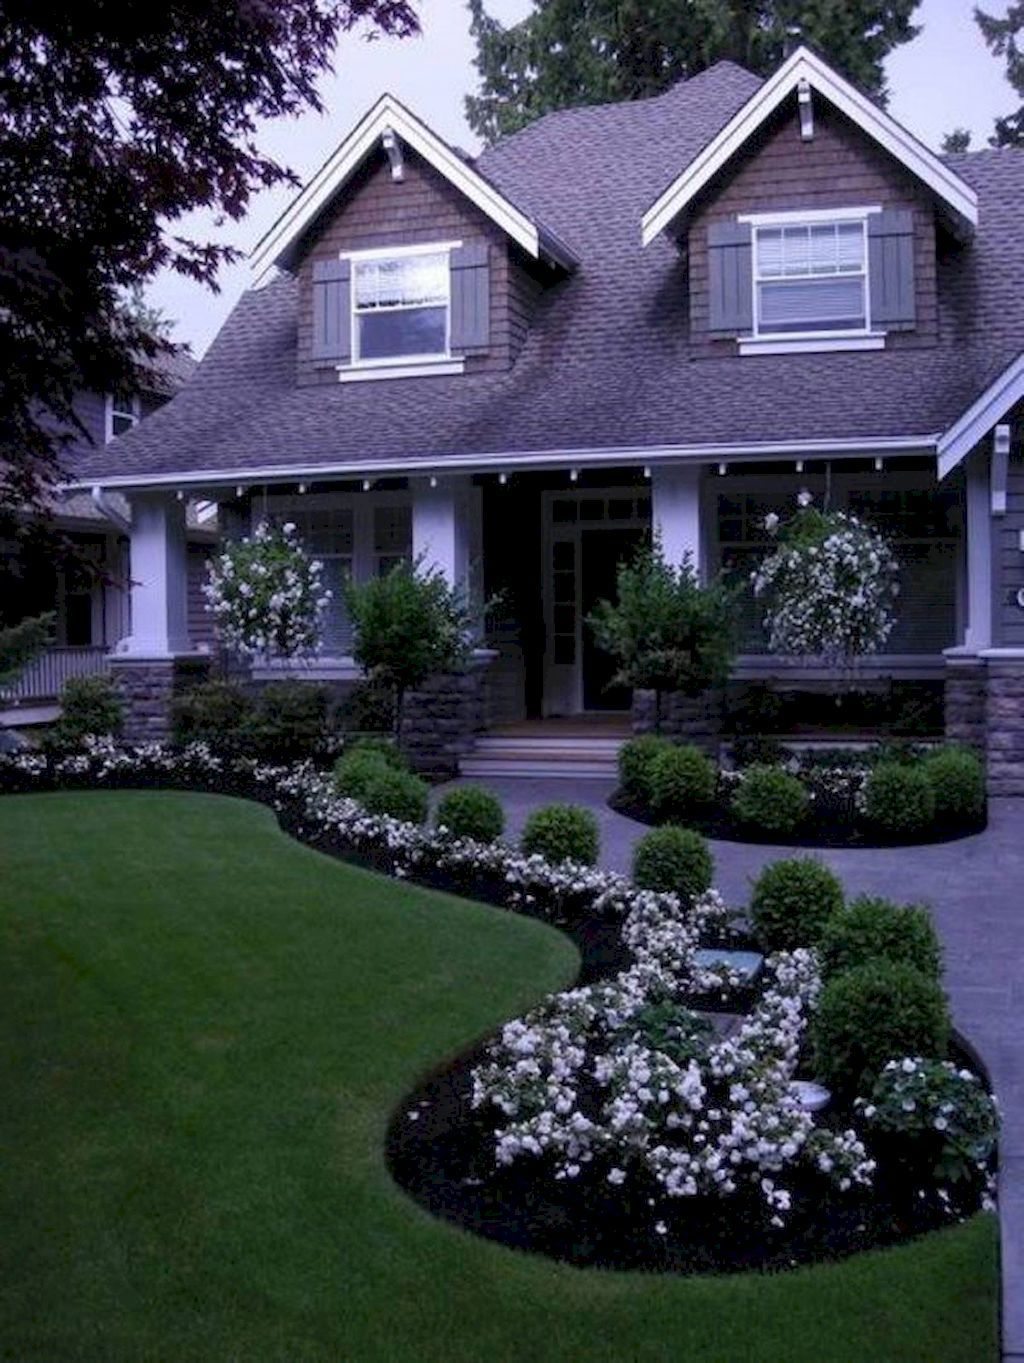 40 beautiful front yard landscaping ideas yard for Landscape small front garden